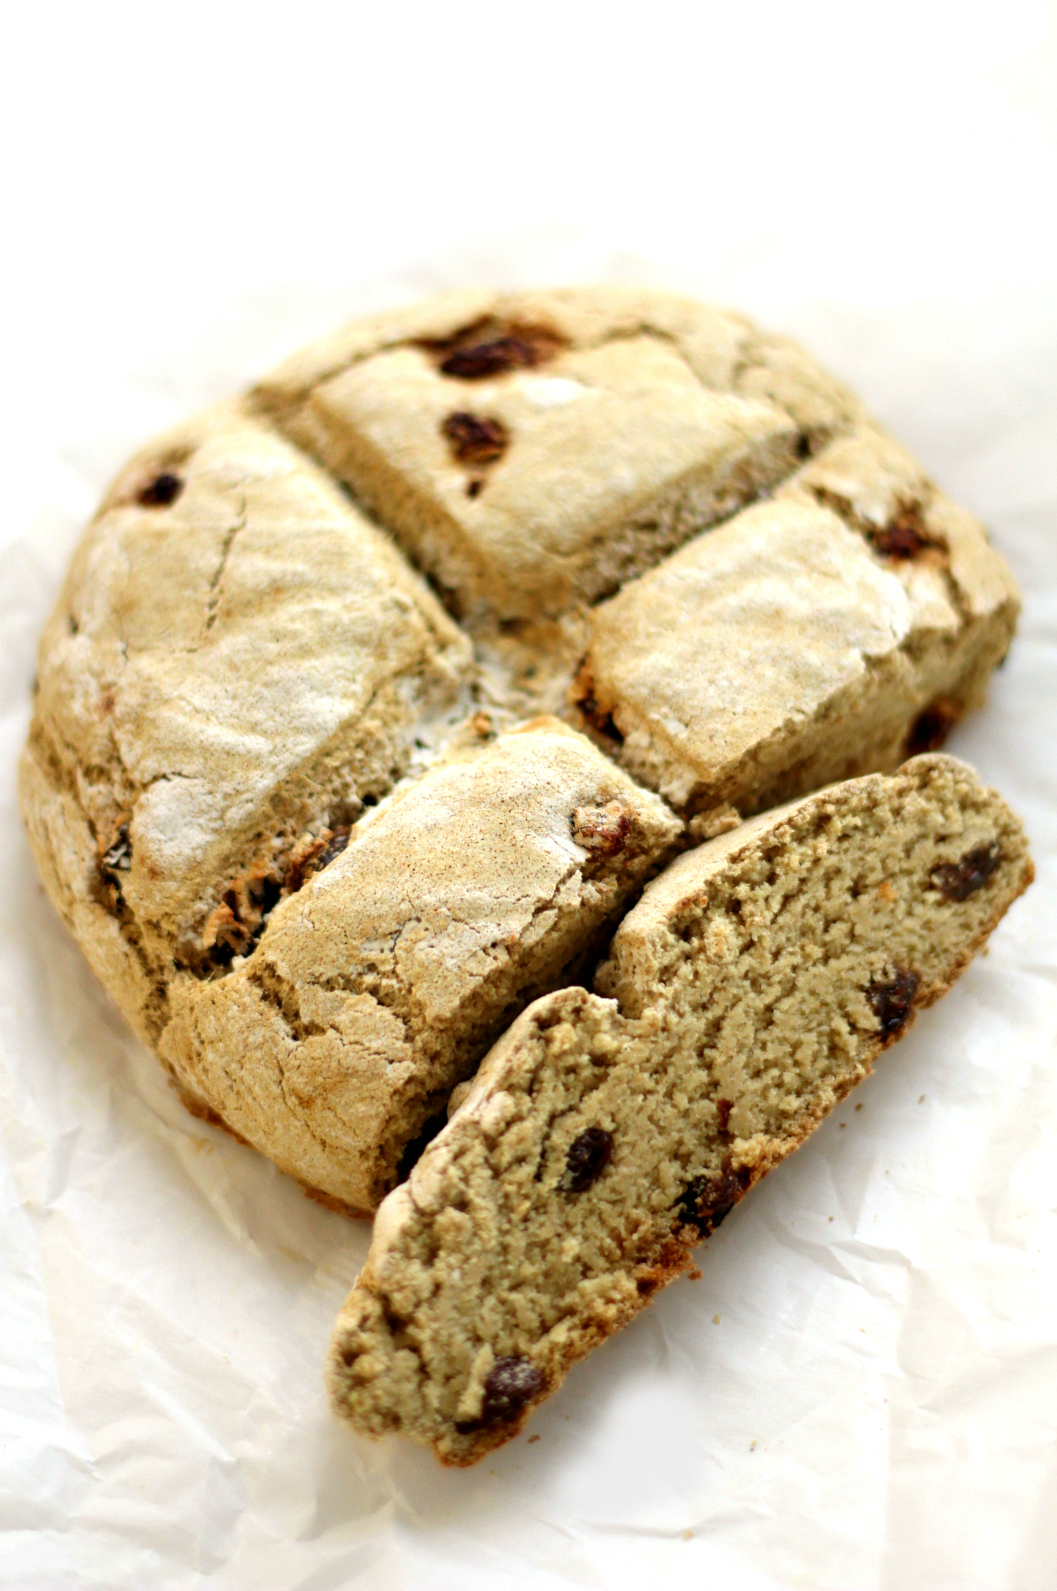 Traditional Gluten-Free Irish Soda Bread | Strength and Sunshine @RebeccaGF666 Everything a traditional Irish soda bread should be, only this one is gluten-free and vegan! A simple flour blend and spotted with raisins, everyone will feel the luck of the Irish with this simple soda bread recipe!